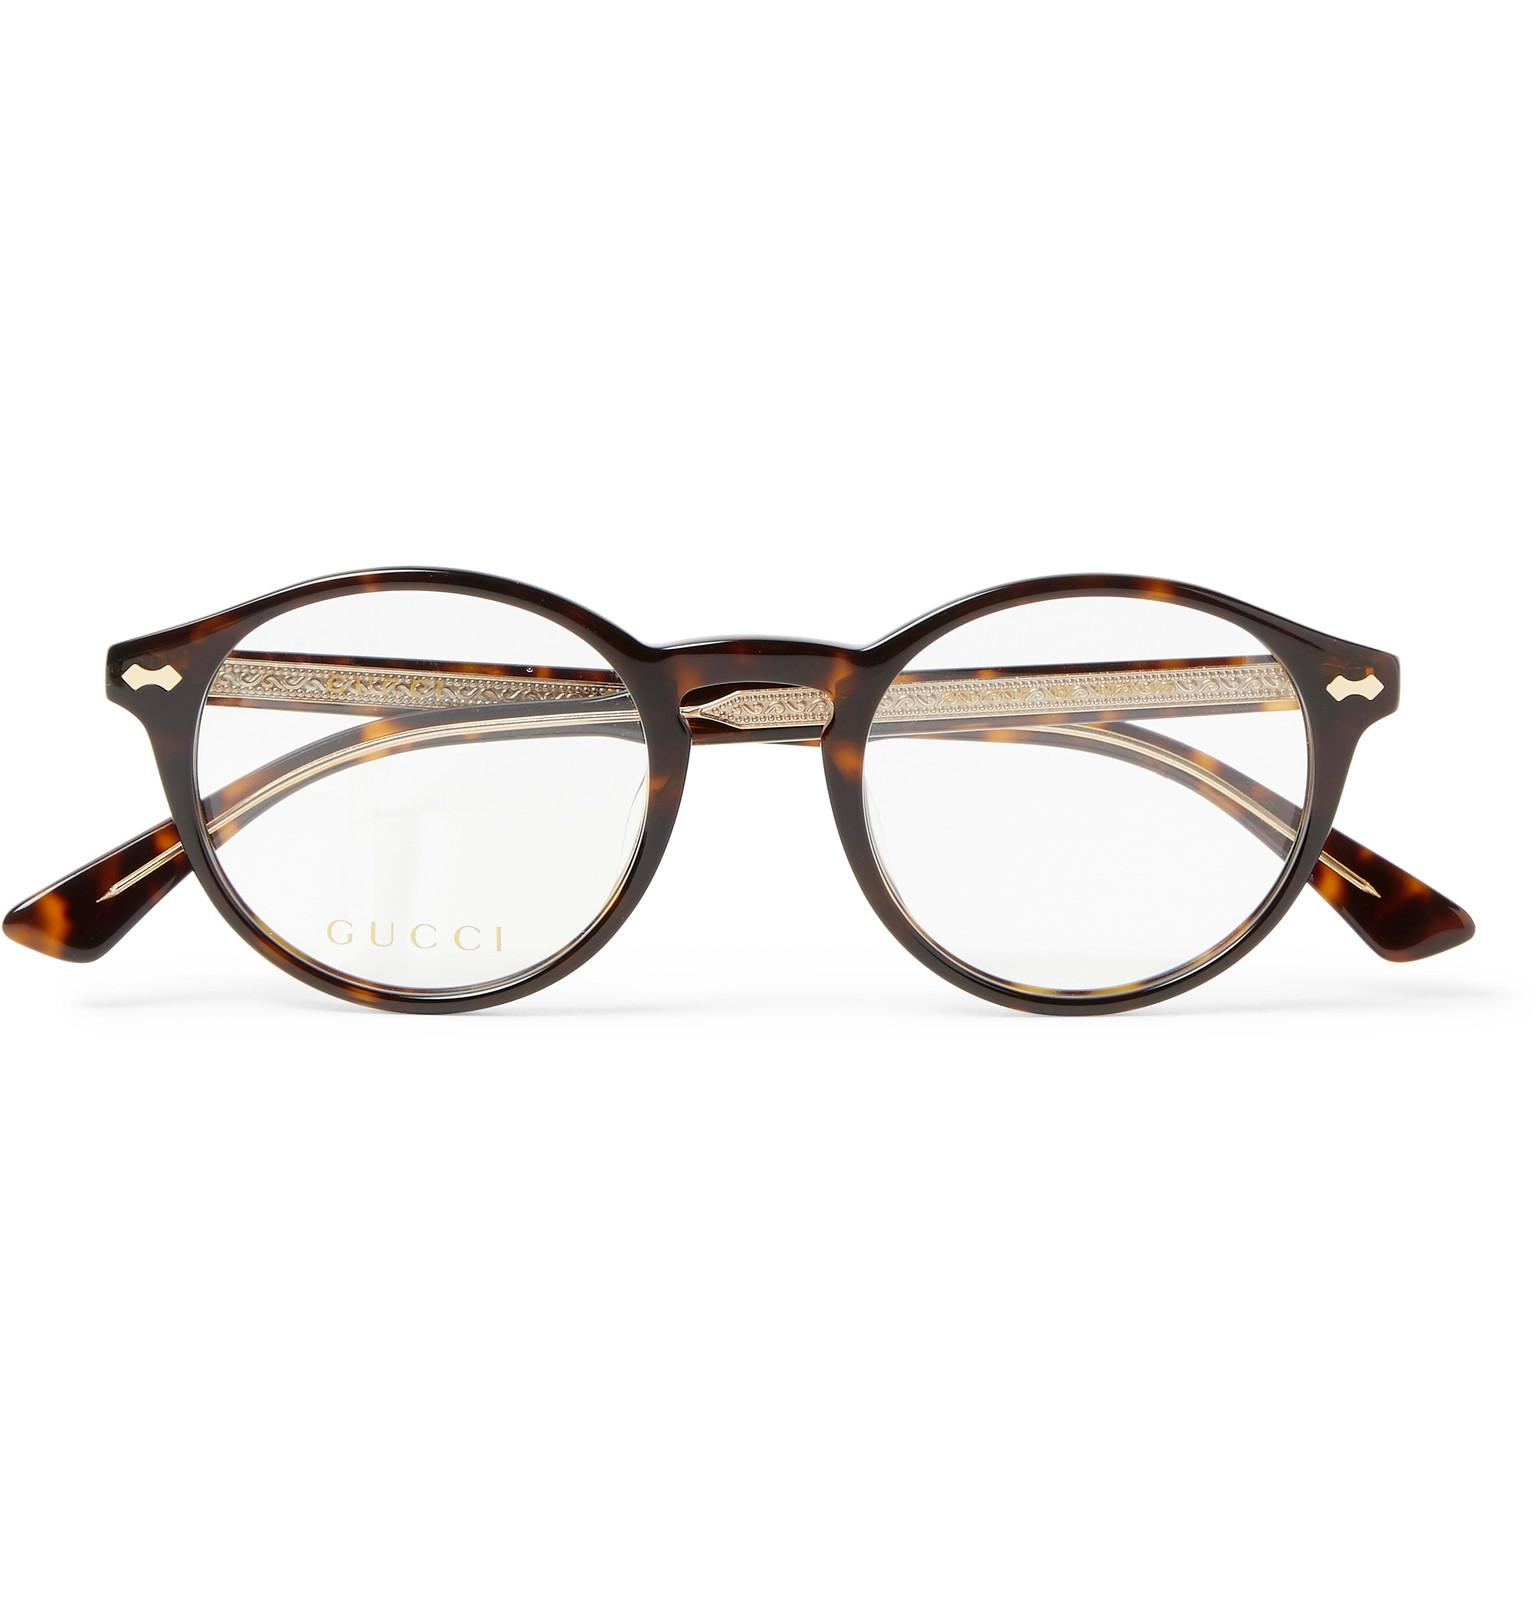 47d59206d63 Lyst - Gucci Round-frame Tortoiseshell Acetate Optical Glasses in ...